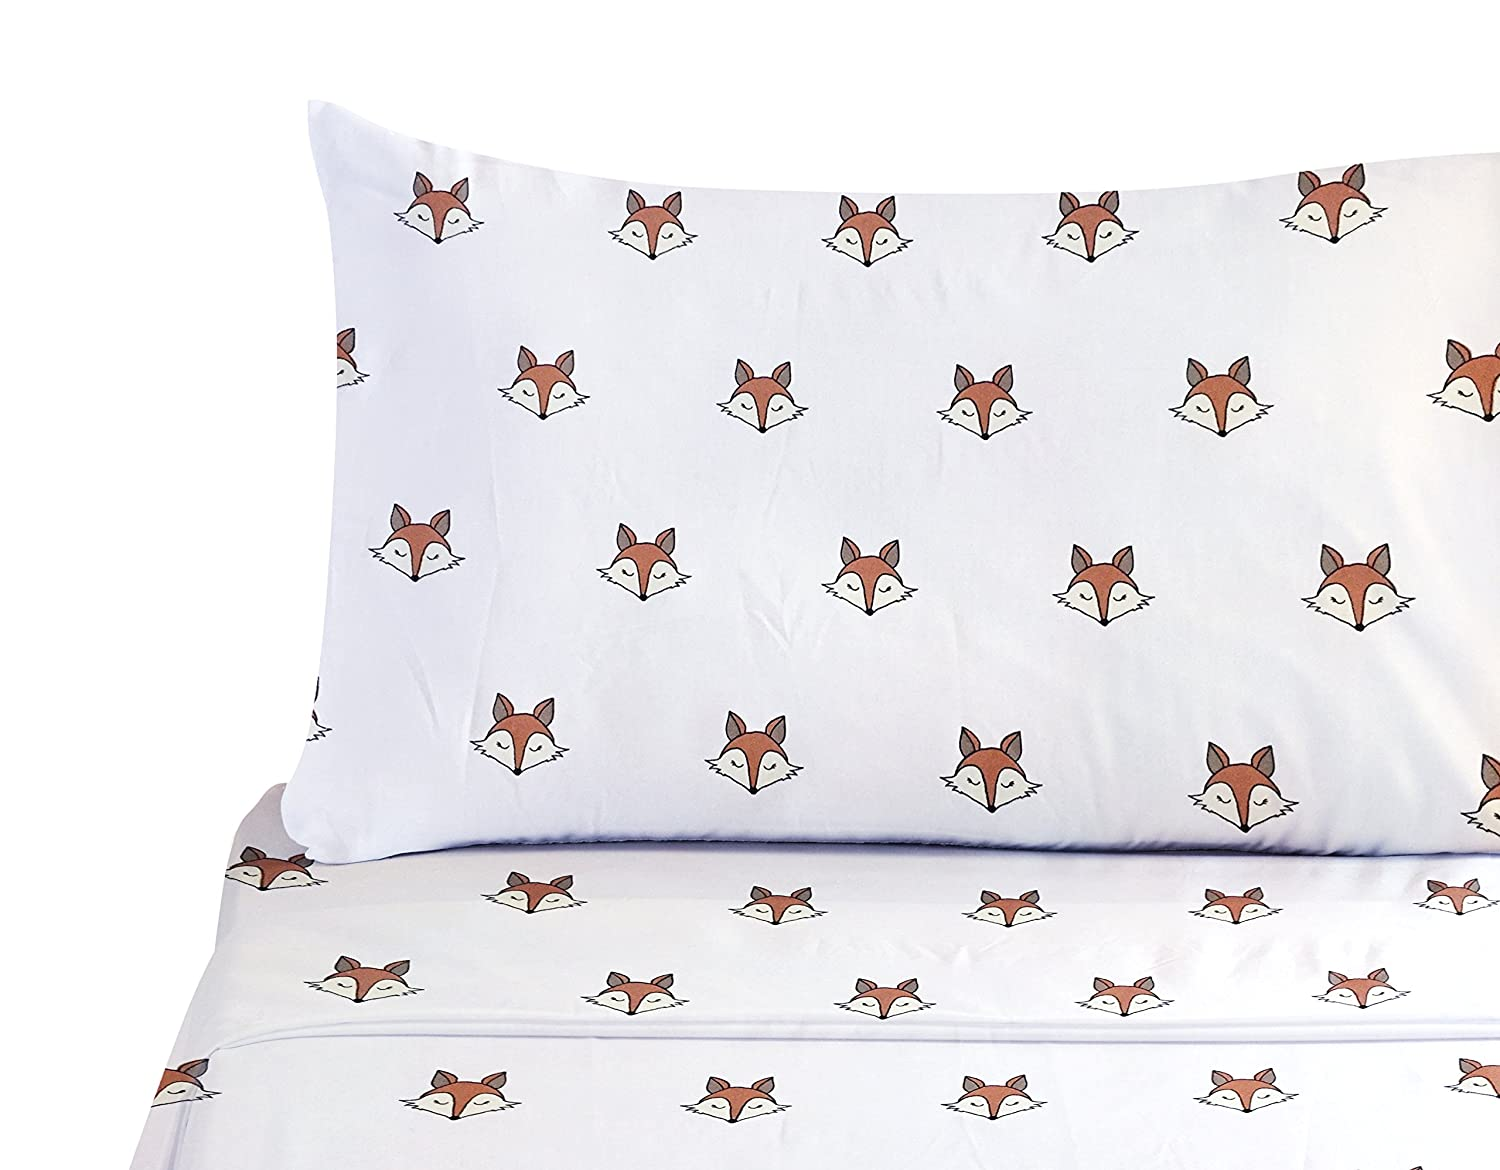 Slumber 1 Woodland Forest Animal Microfiber Sheet Set with Friendly Fox Face - Cute Fox Sheets (Twin)